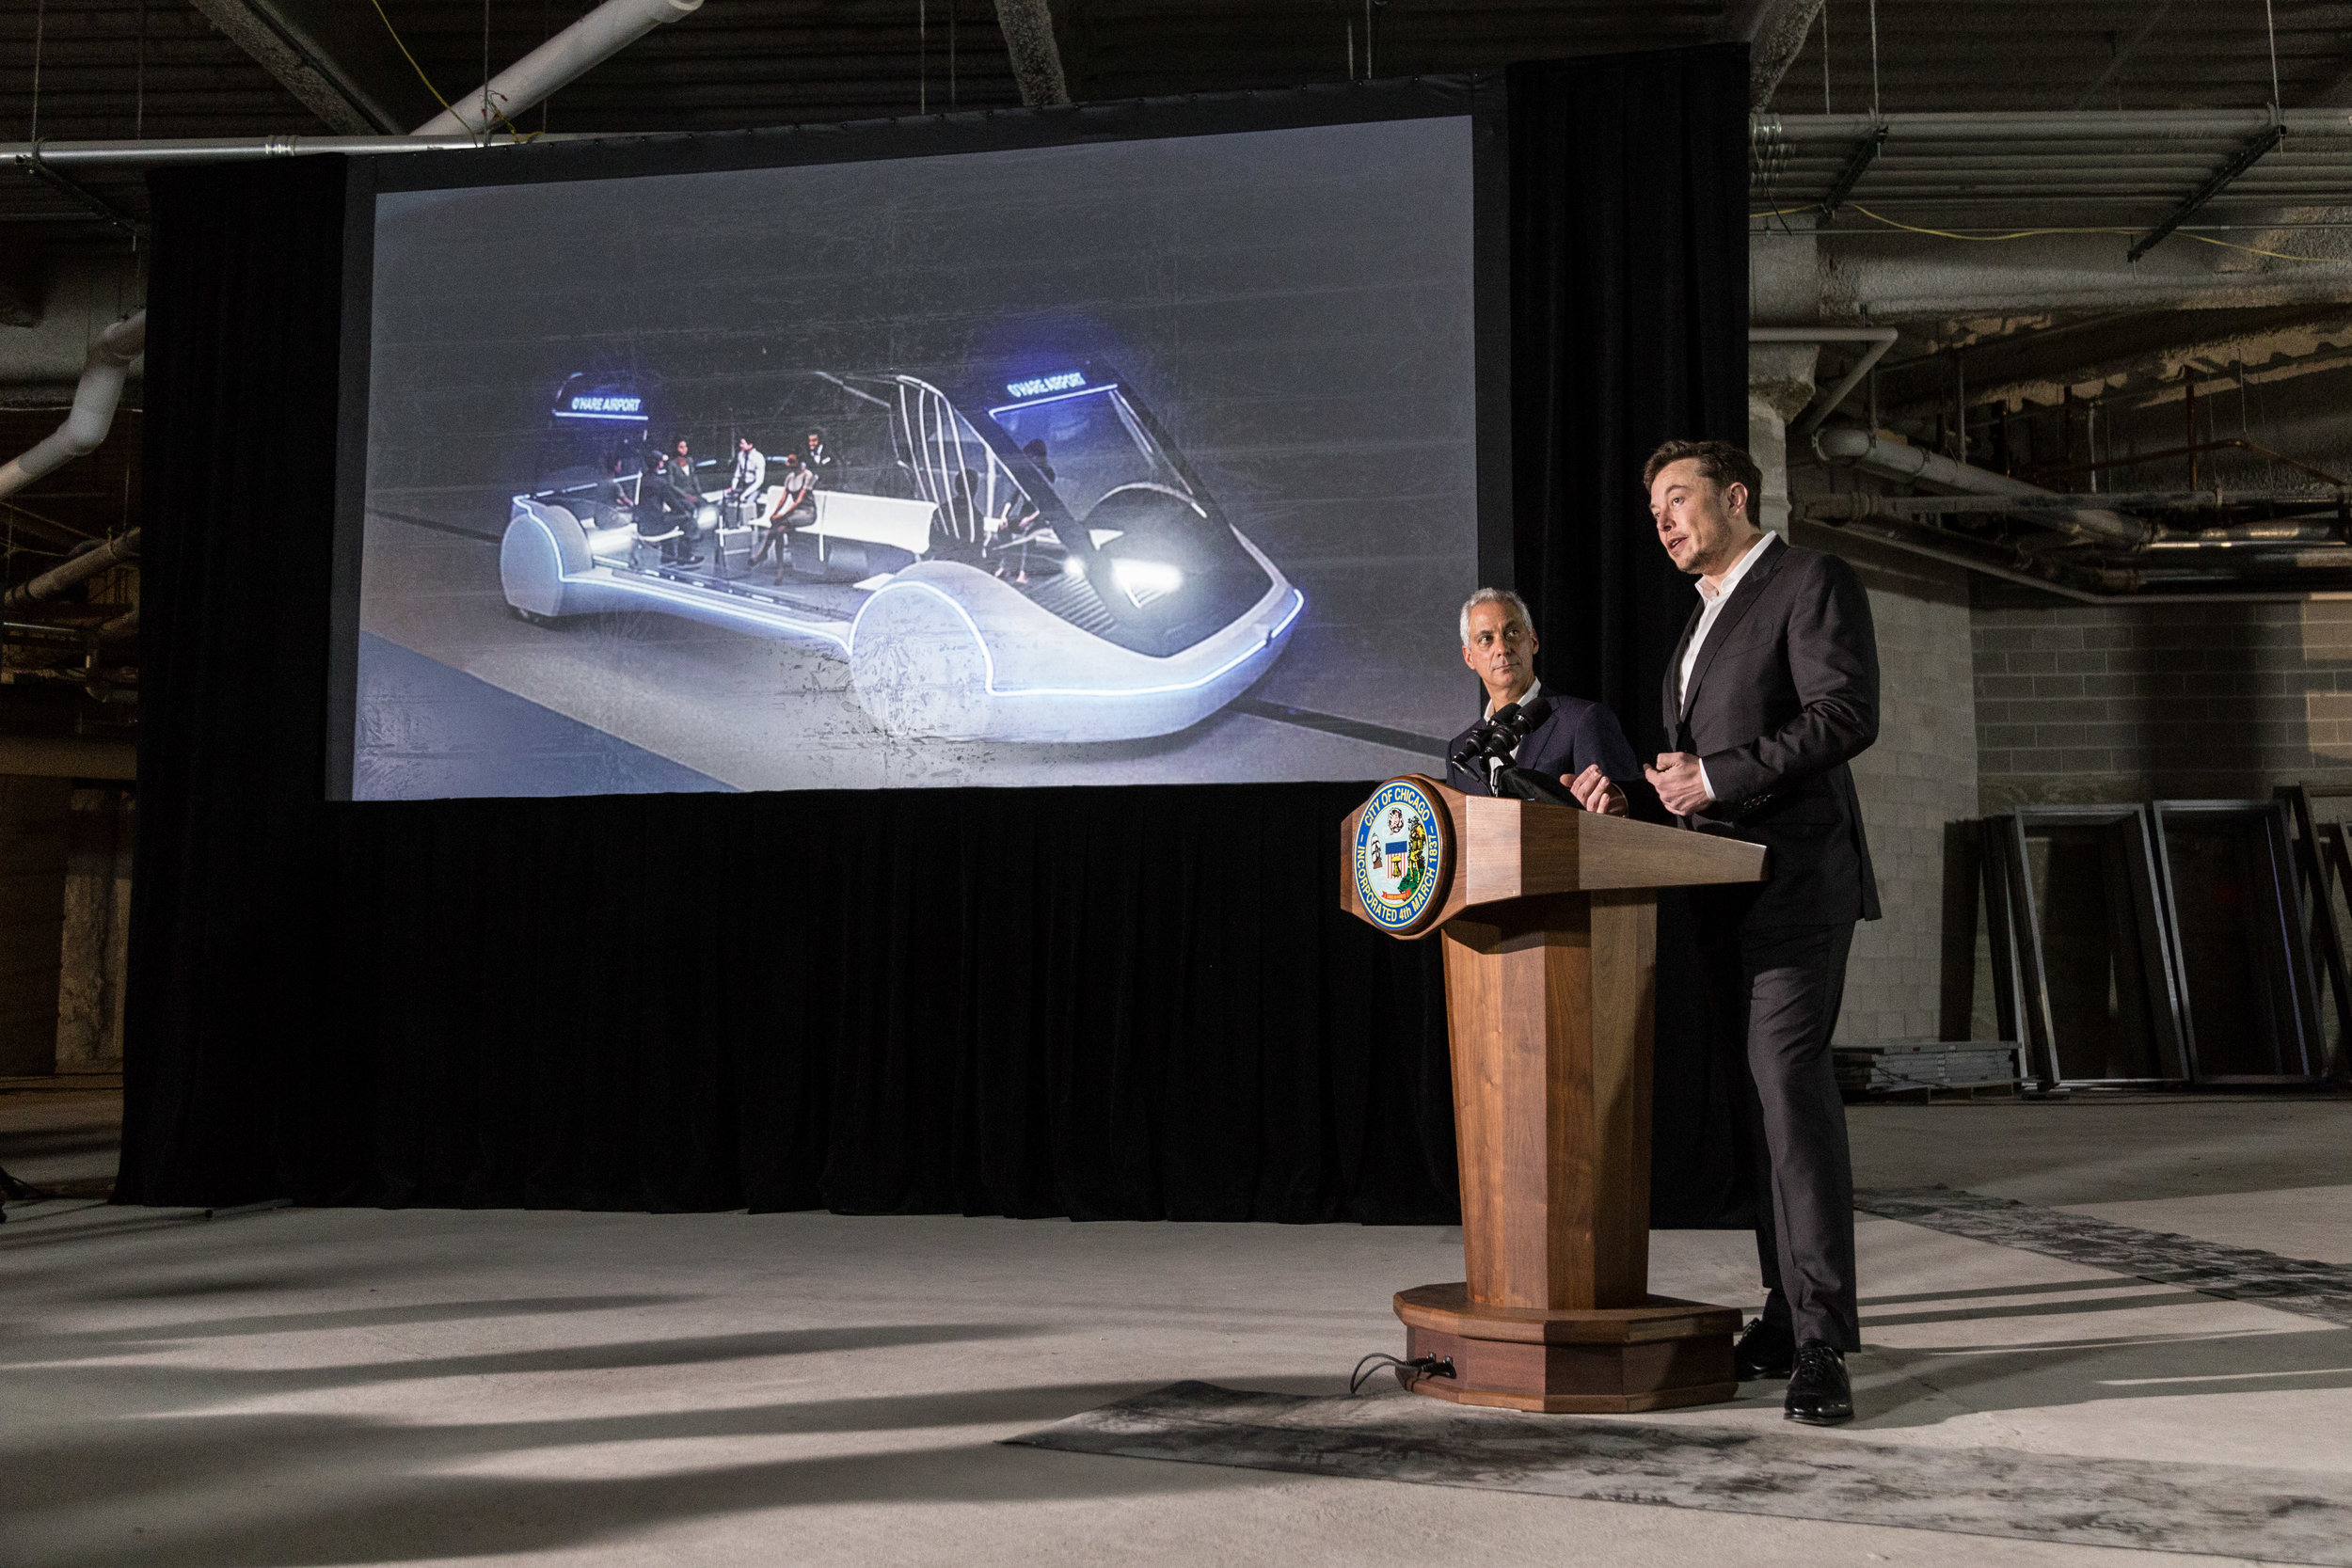 Elon Musk and Mayor Rahm Emanuel addressed plans for a high-speed underground transportation system that would link downtown Chicago to O'Hare in 12 minutes, Thursday June 14, near the Pedway entrance to Block 37. | Erin Brown/Sun-Times